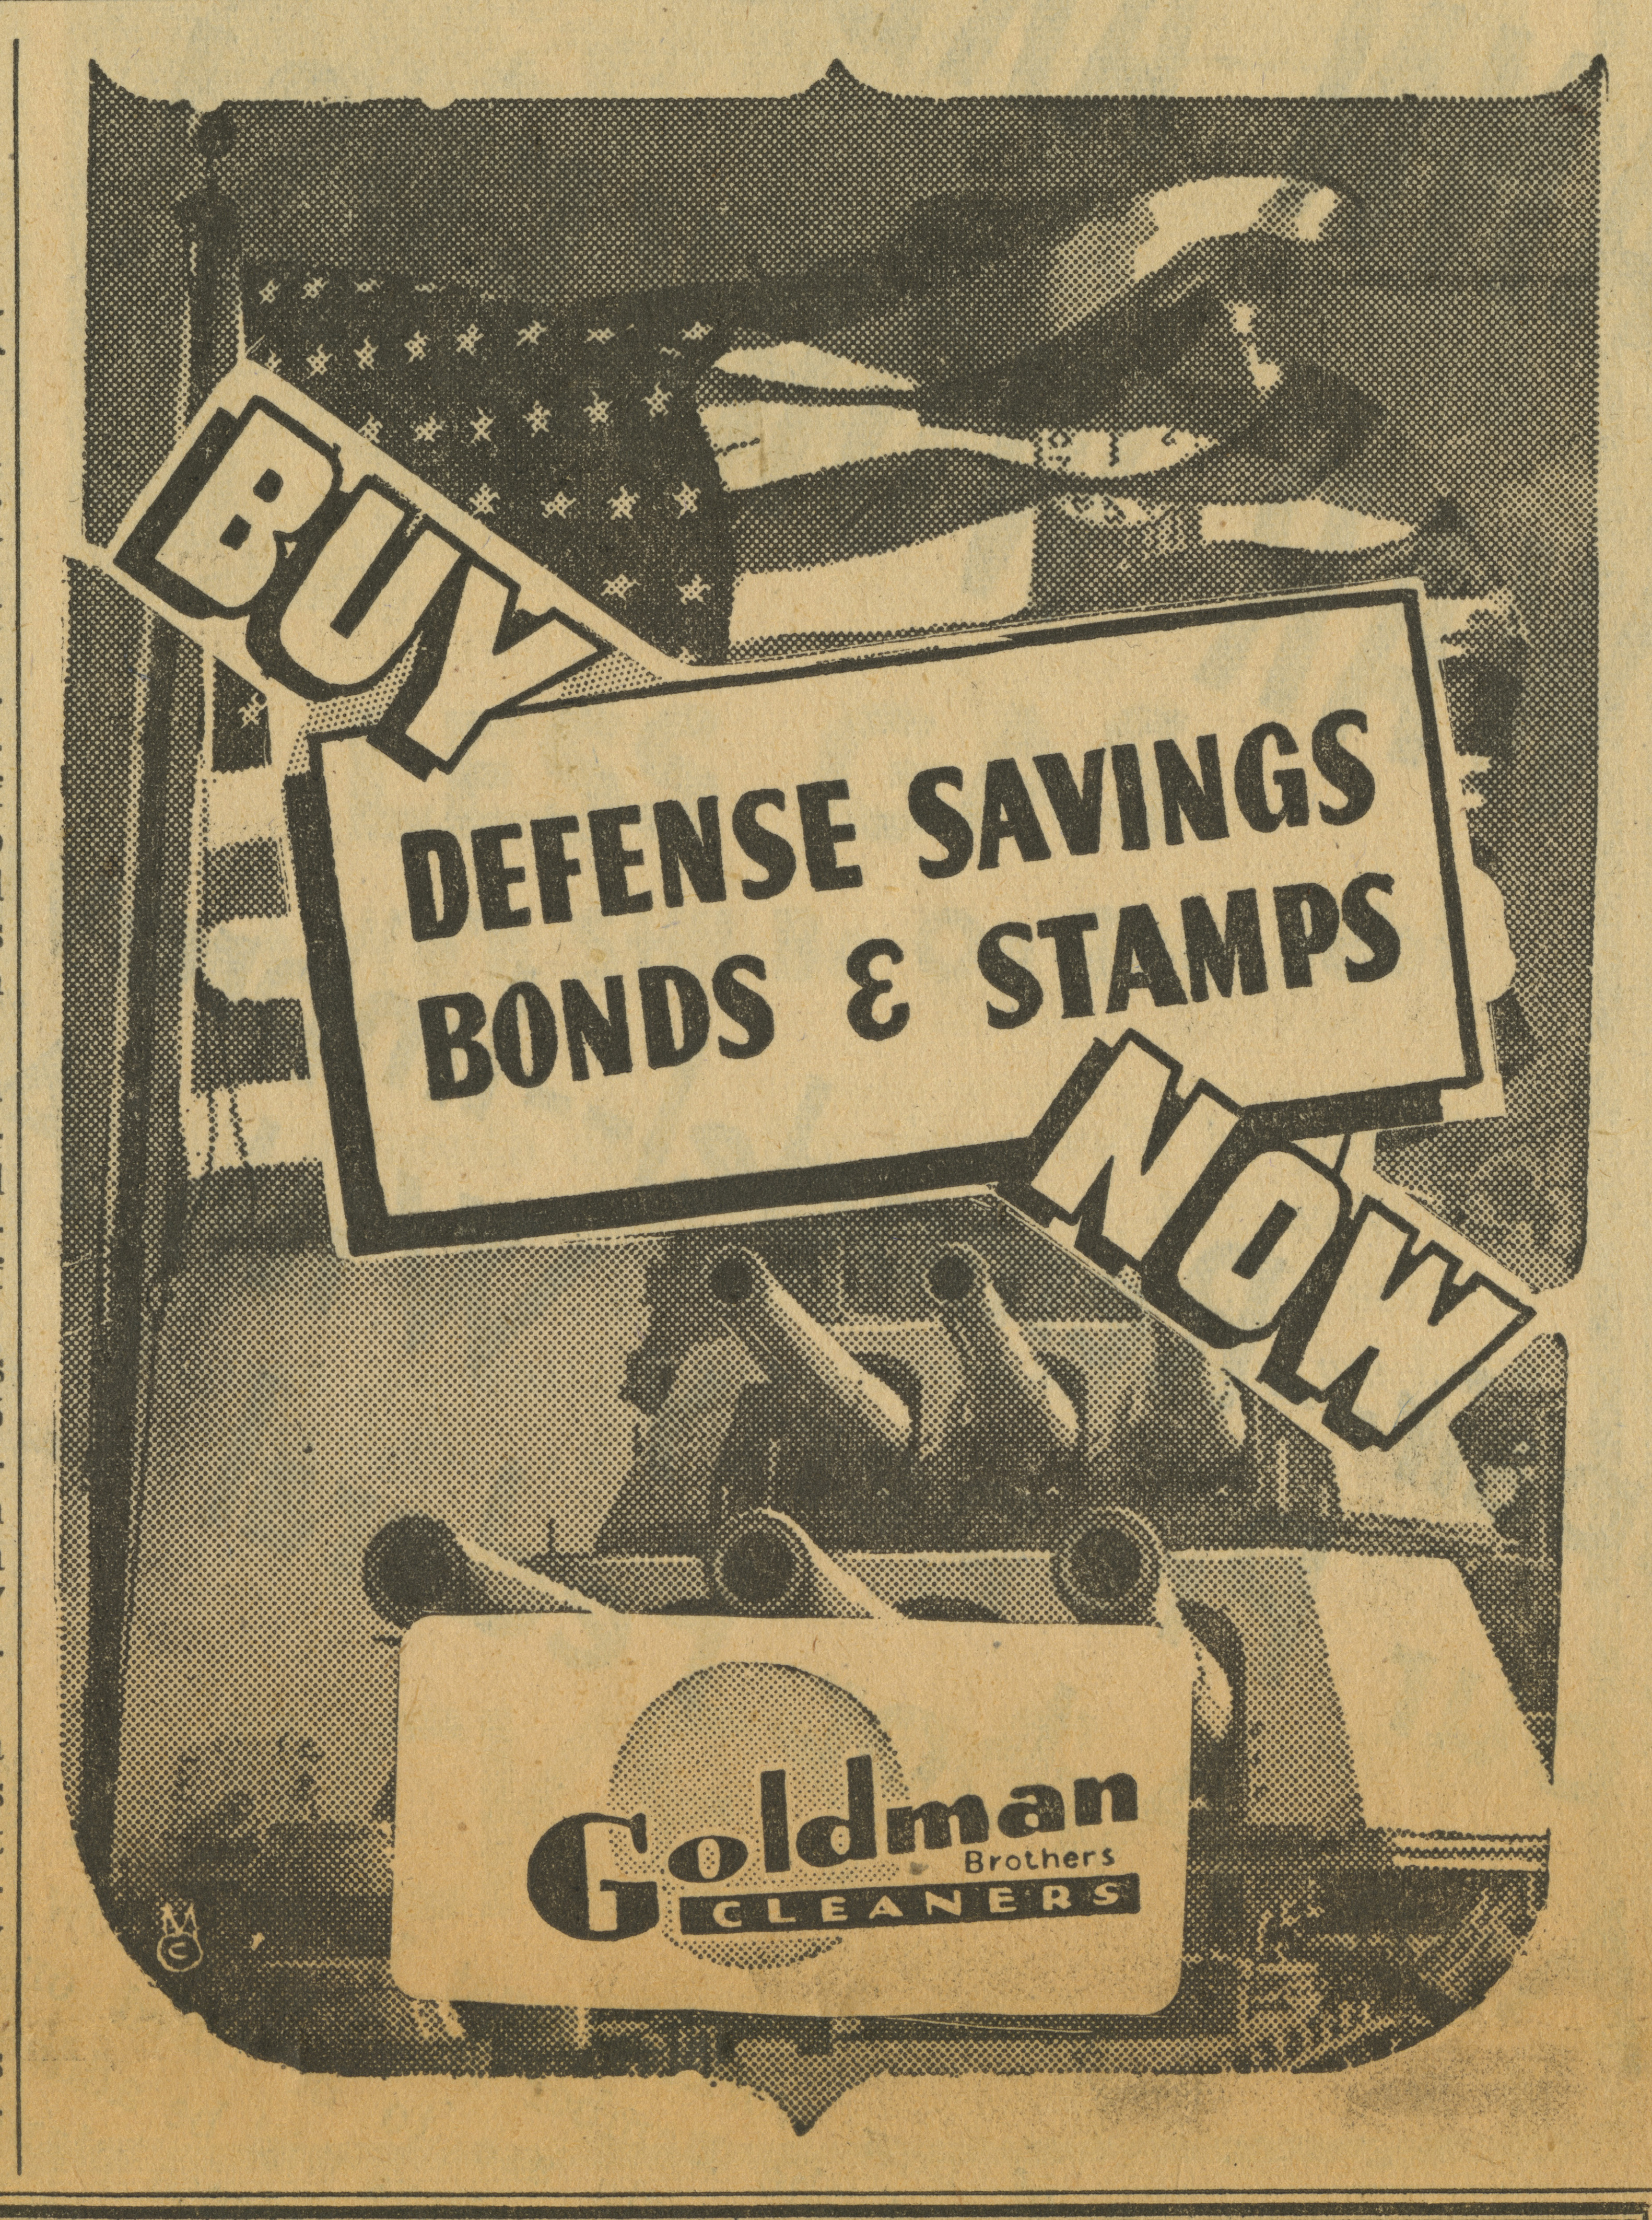 Goldman Brothers Cleaners [advertisement] image